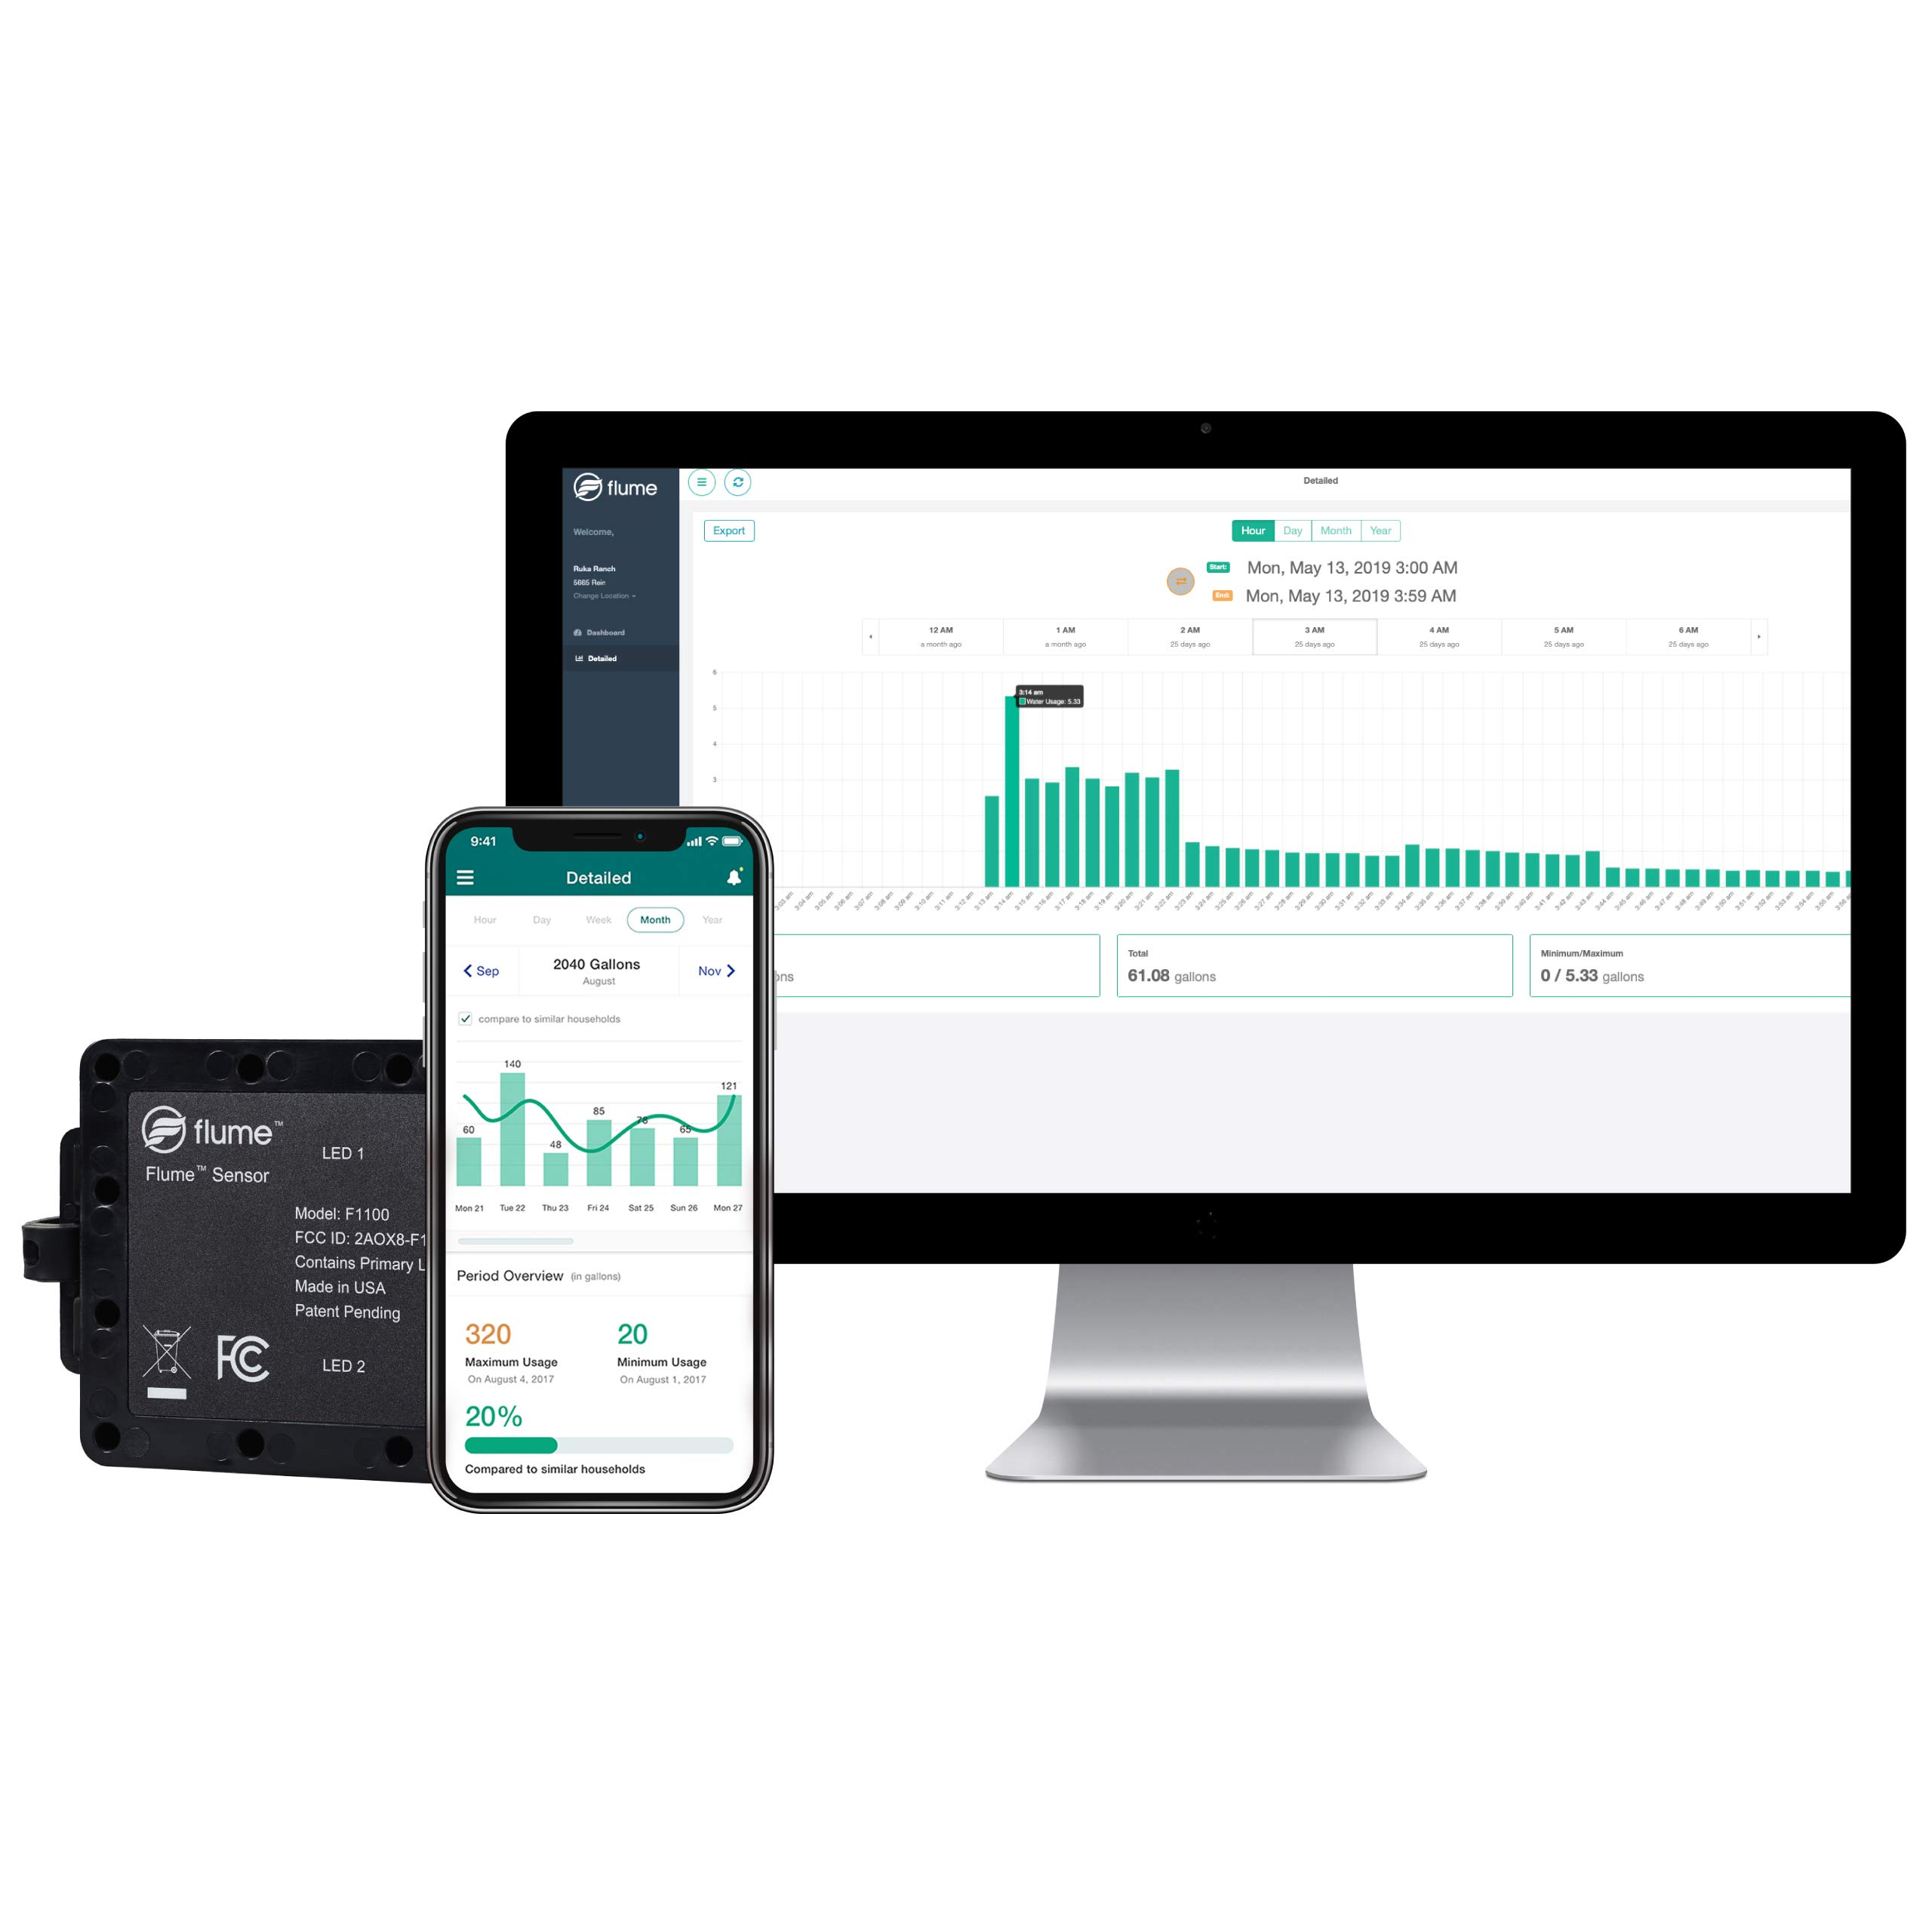 Flume Water Monitor: Smart Home Water Monitoring to Detect Leaks & Track Water Usage in Real Time. Compatible with Alexa. by Flume